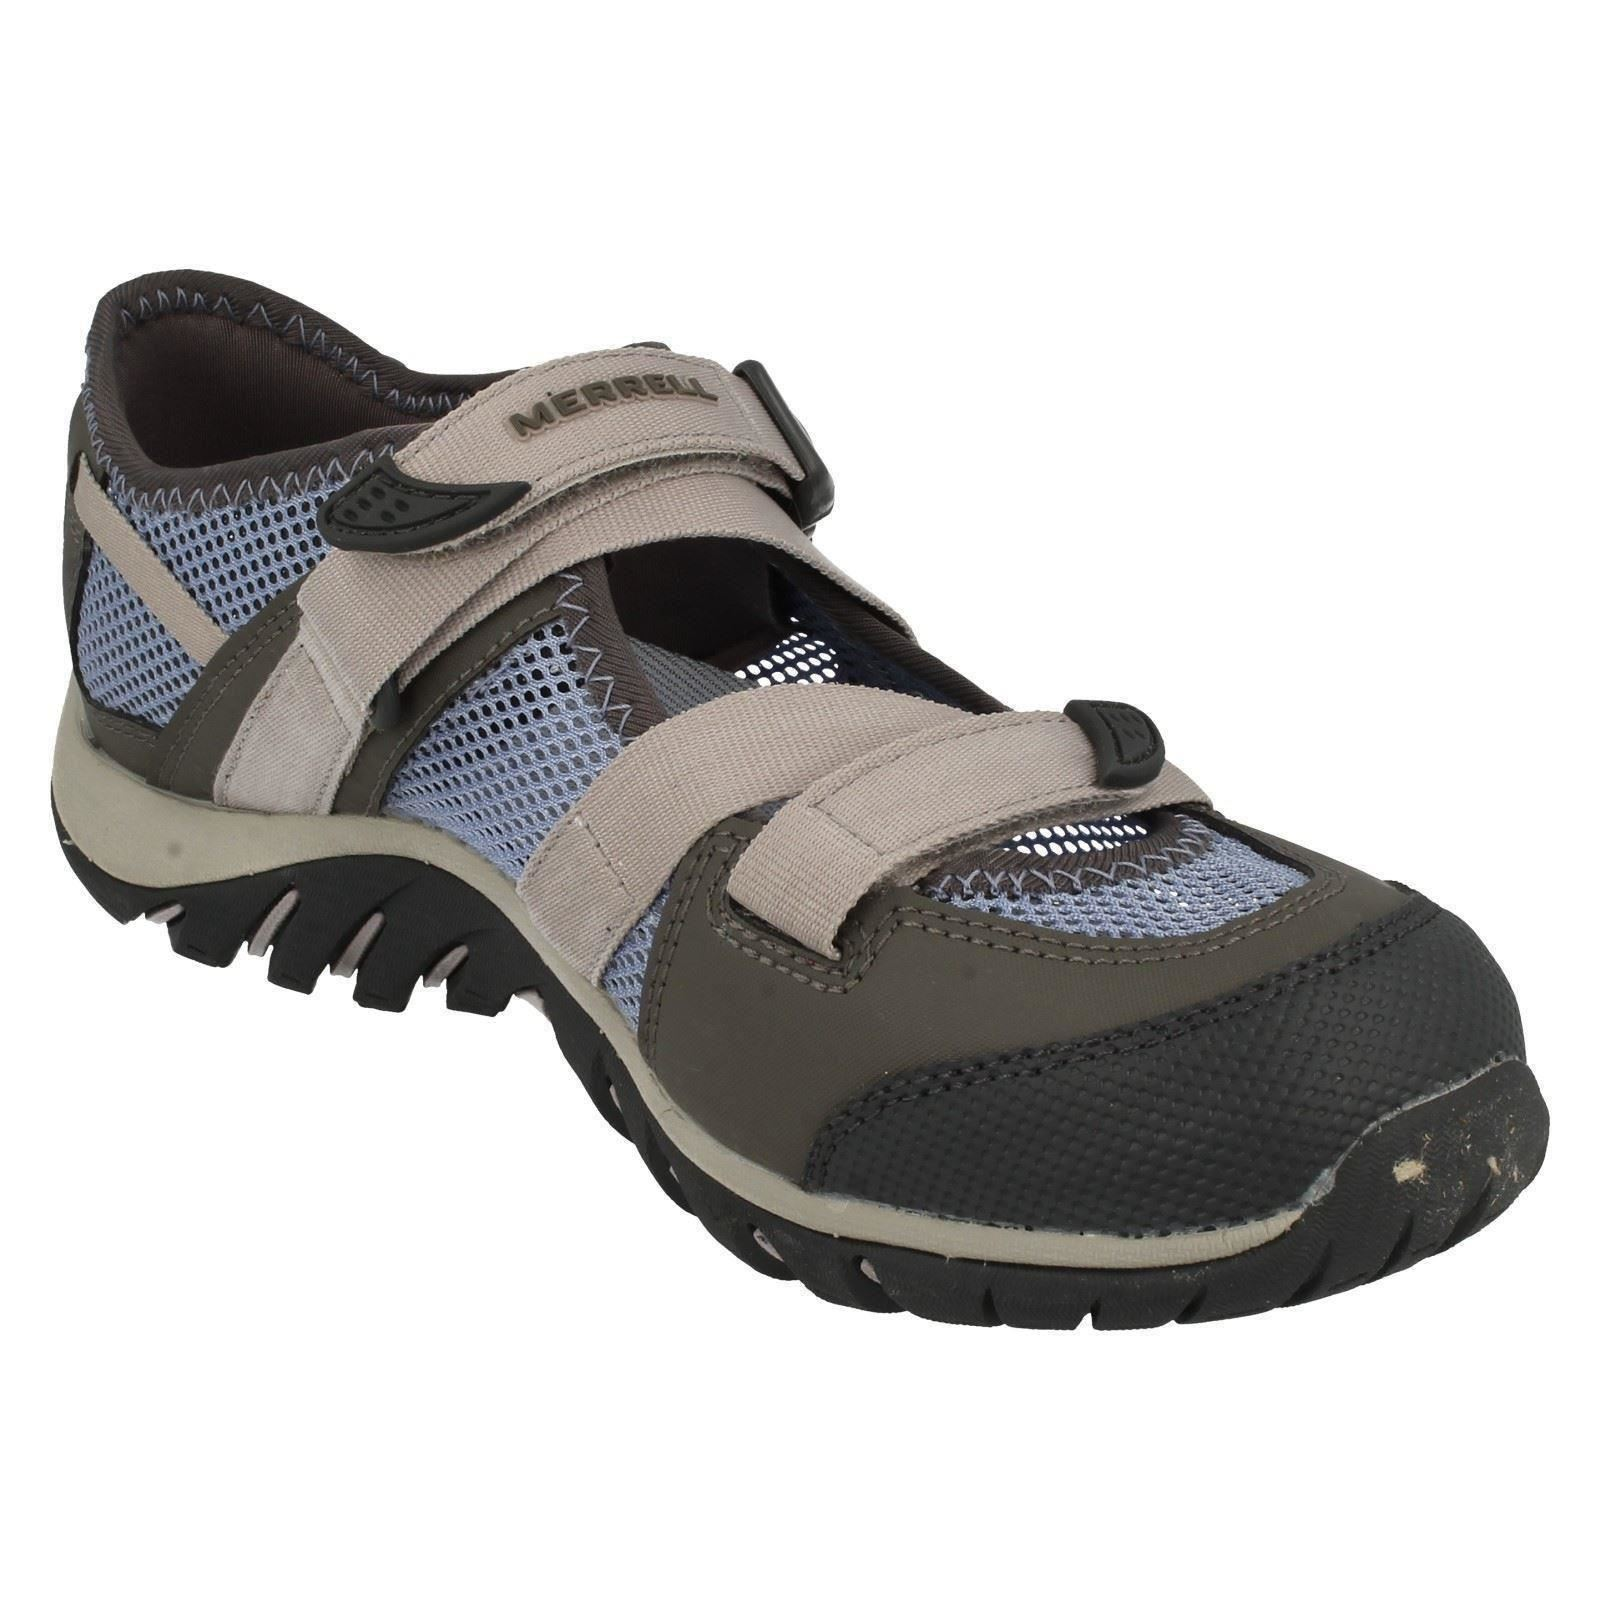 Ladies-Merrell-Buckle-Fastened-Casual-Shoes-Waterpro-Crystal-J82284 thumbnail 8